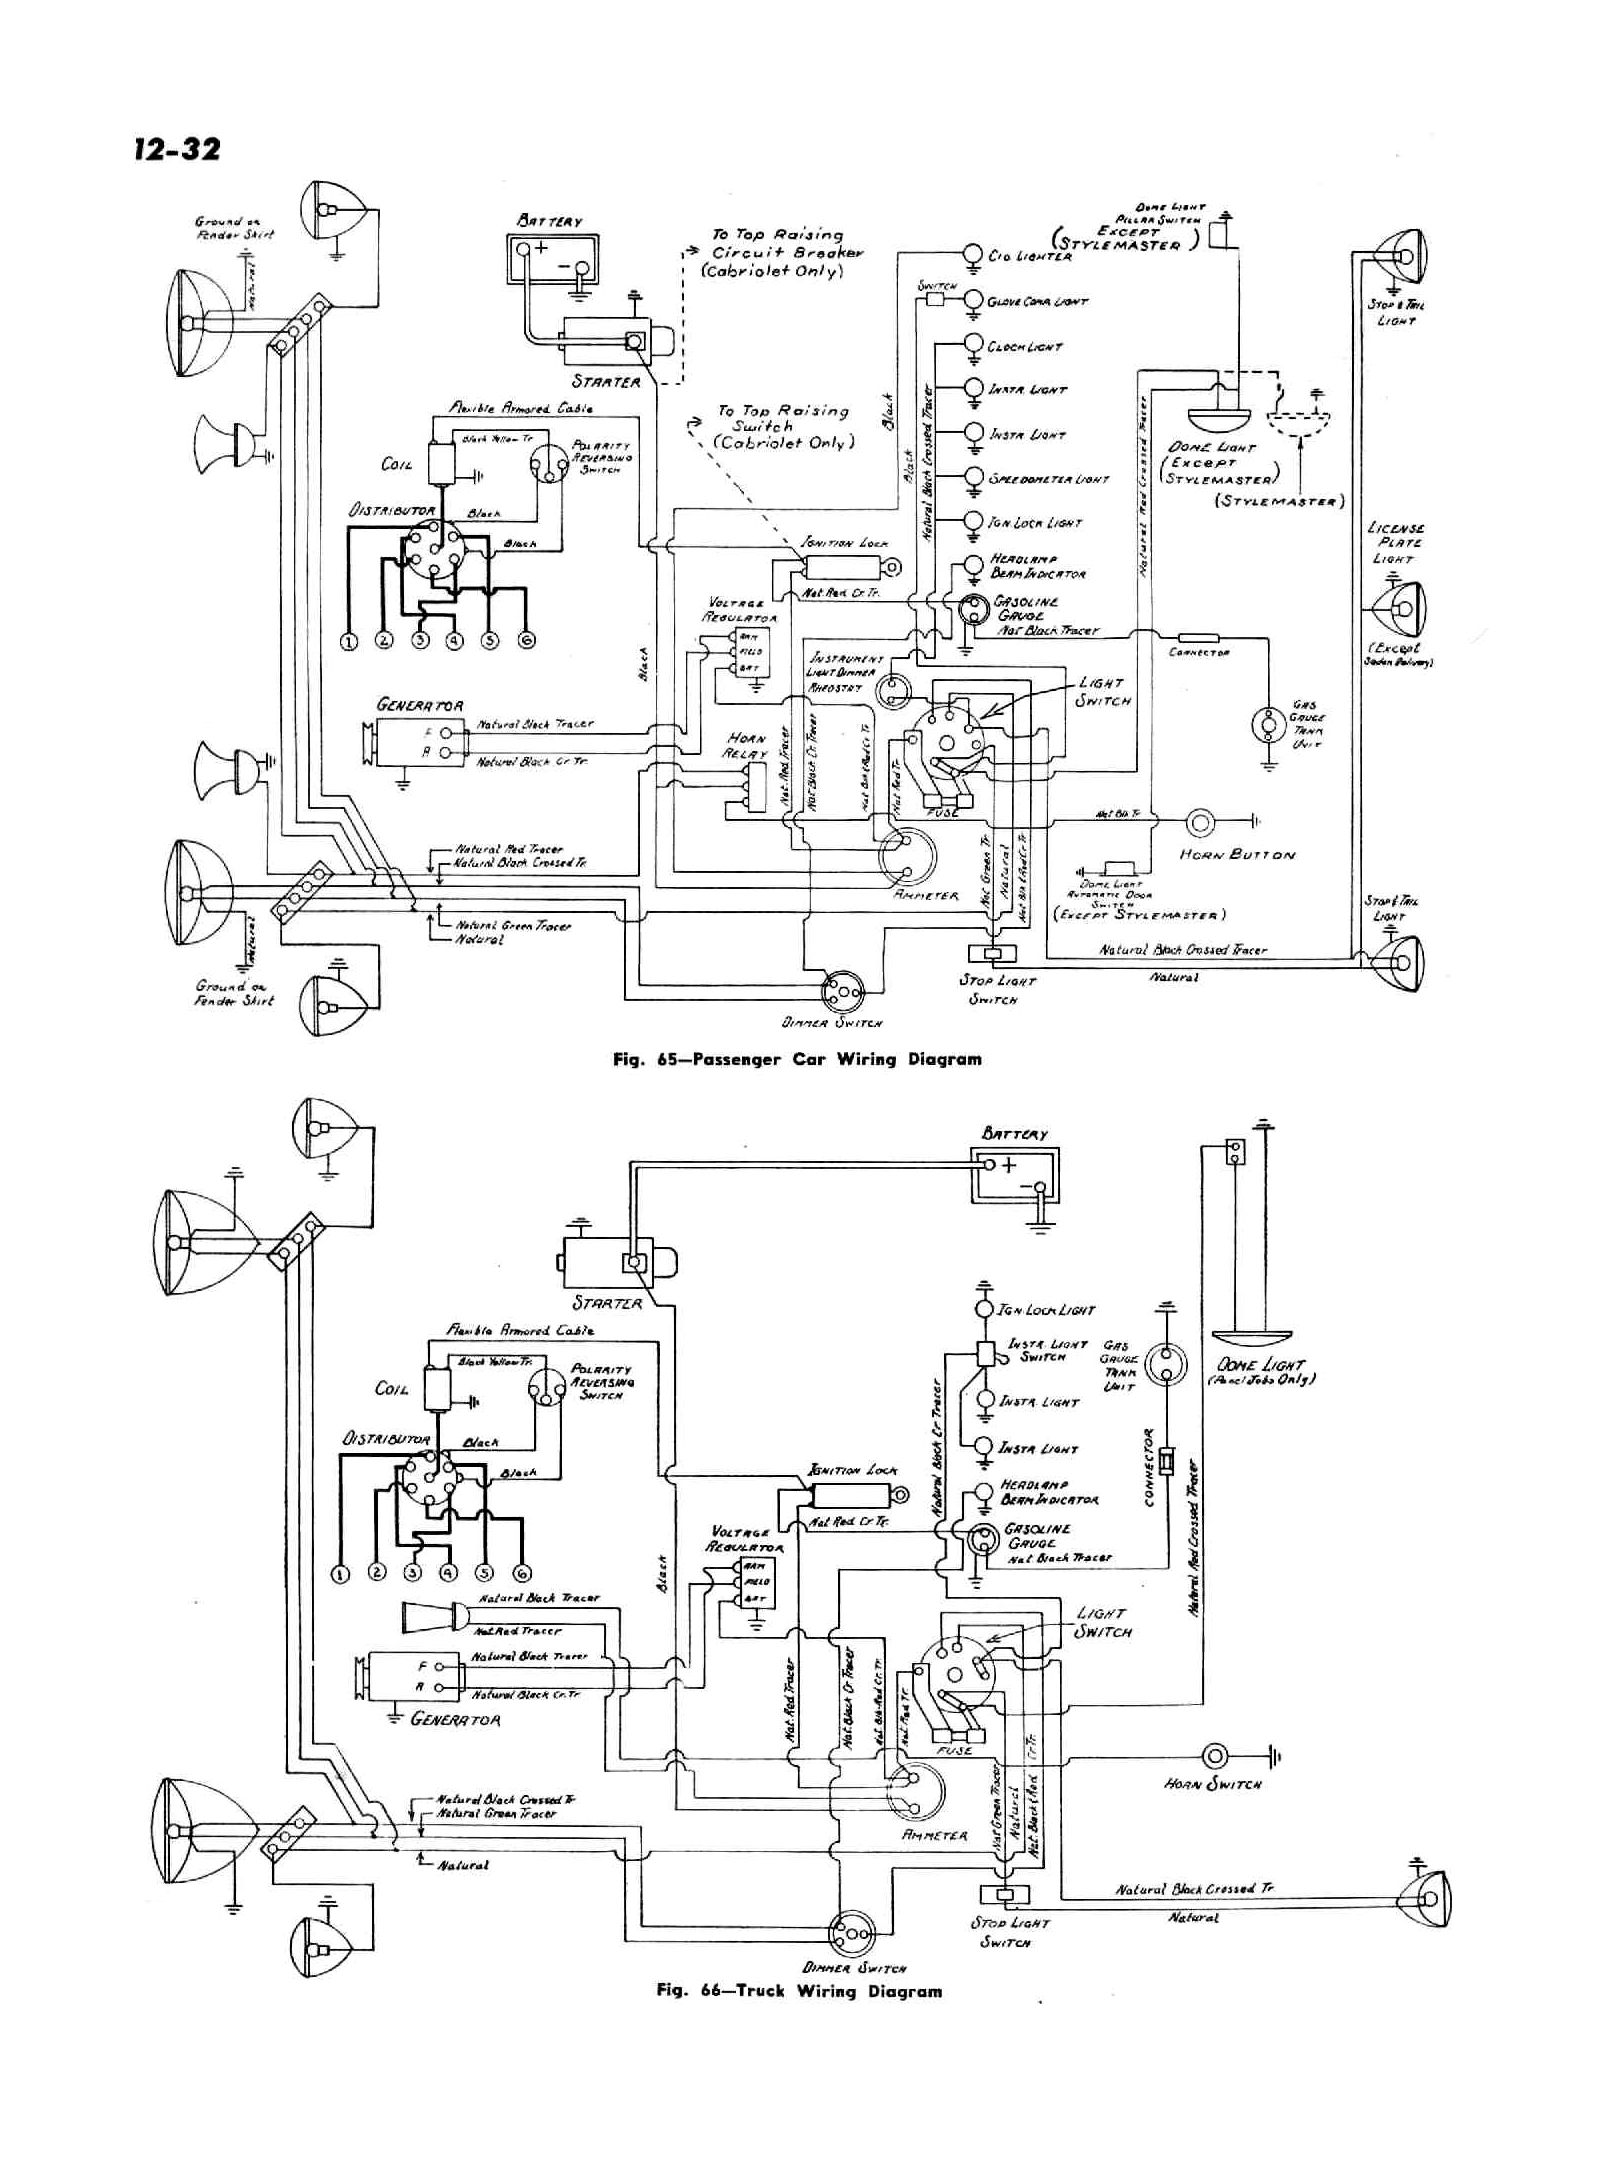 4247csm1232 chevy wiring diagrams chevy truck wiring diagram at fashall.co